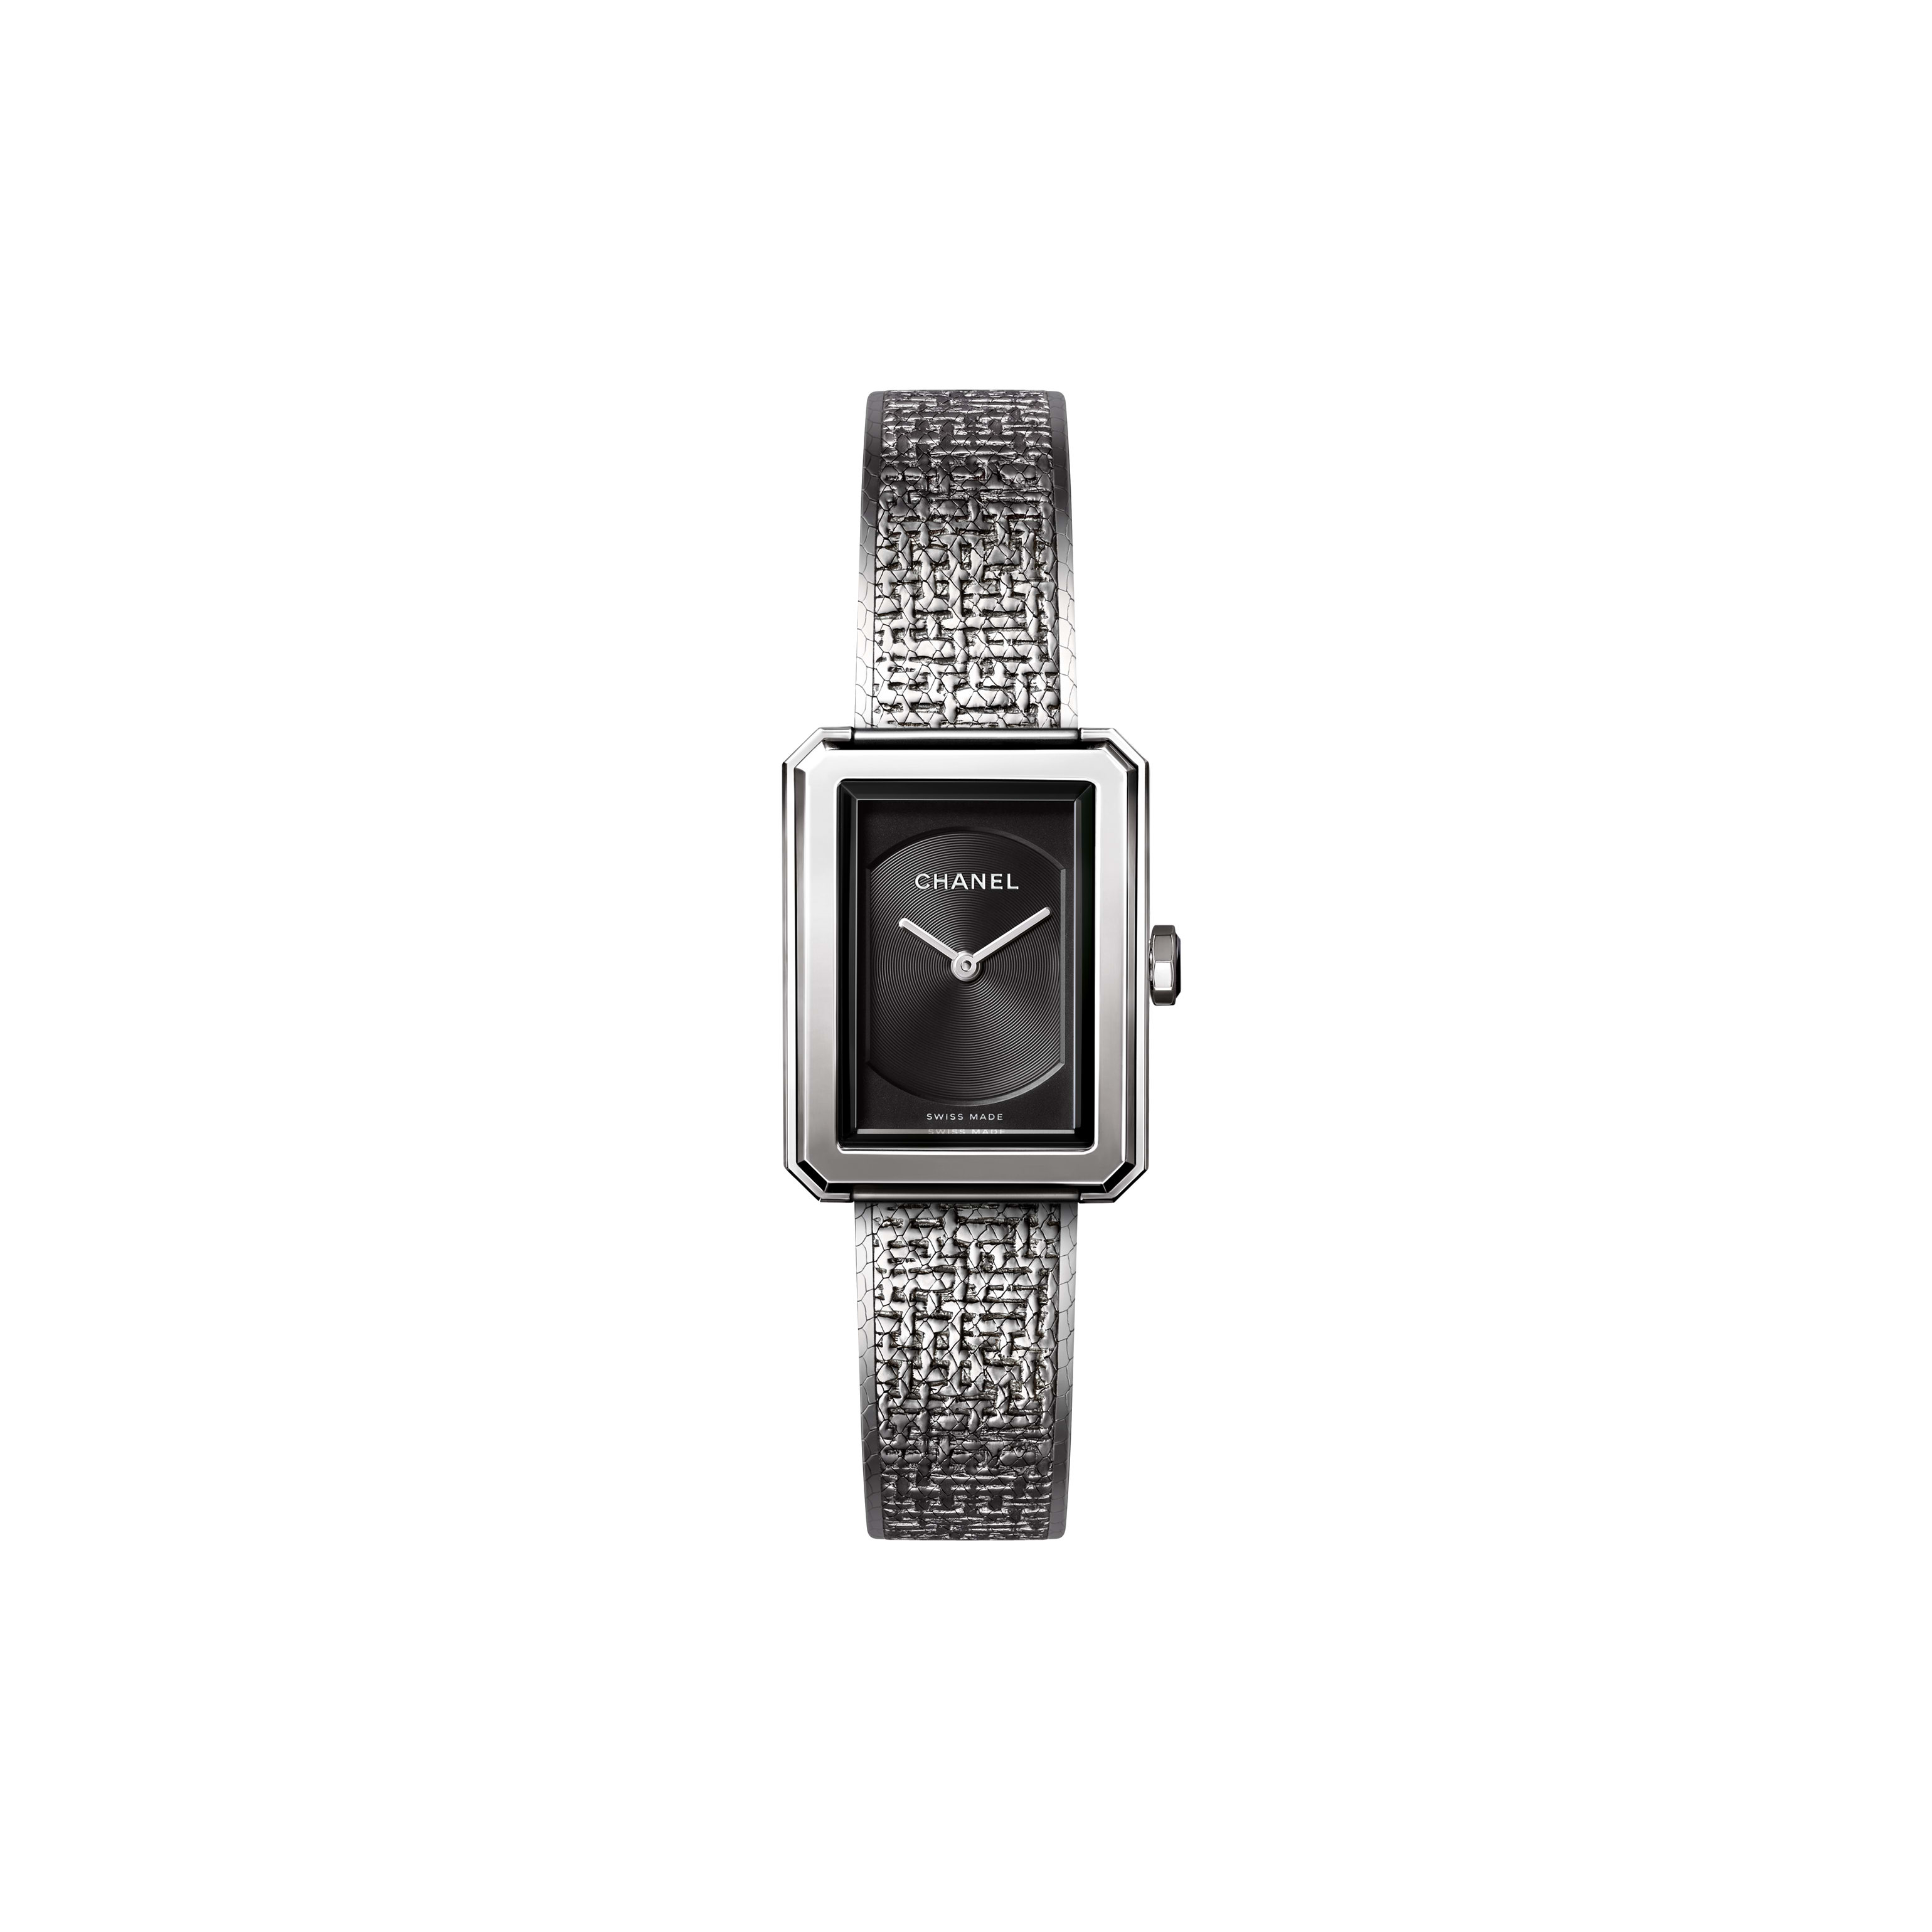 BOY·FRIEND TWEED Watch - Small version, steel - CHANEL - Default view - see standard sized version